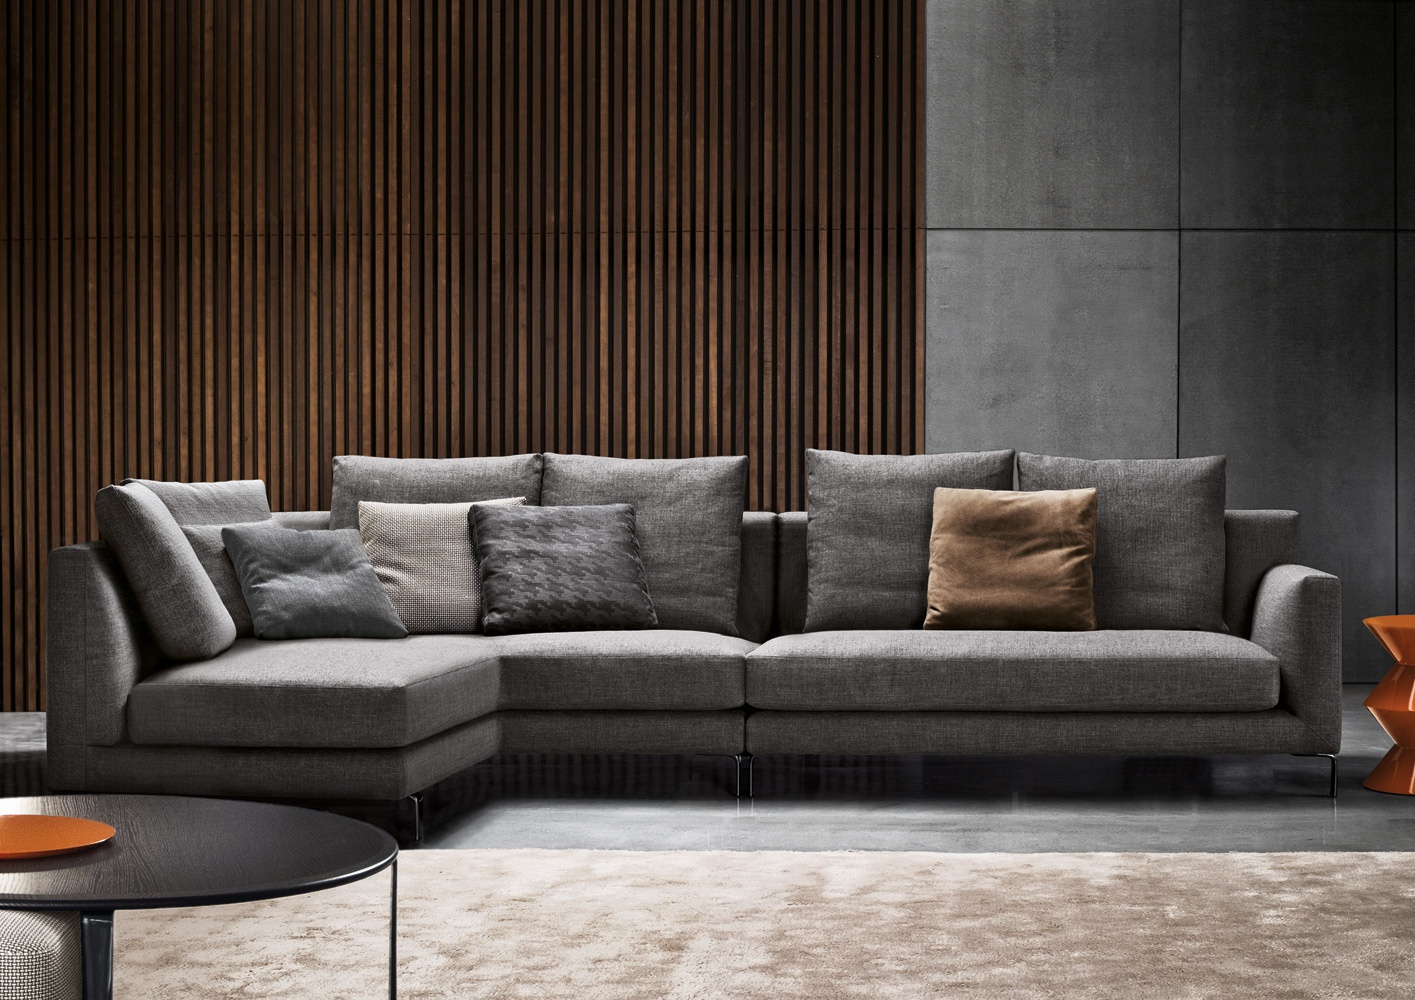 Modular Sofa Allen Minotti Luxury Furniture Mr